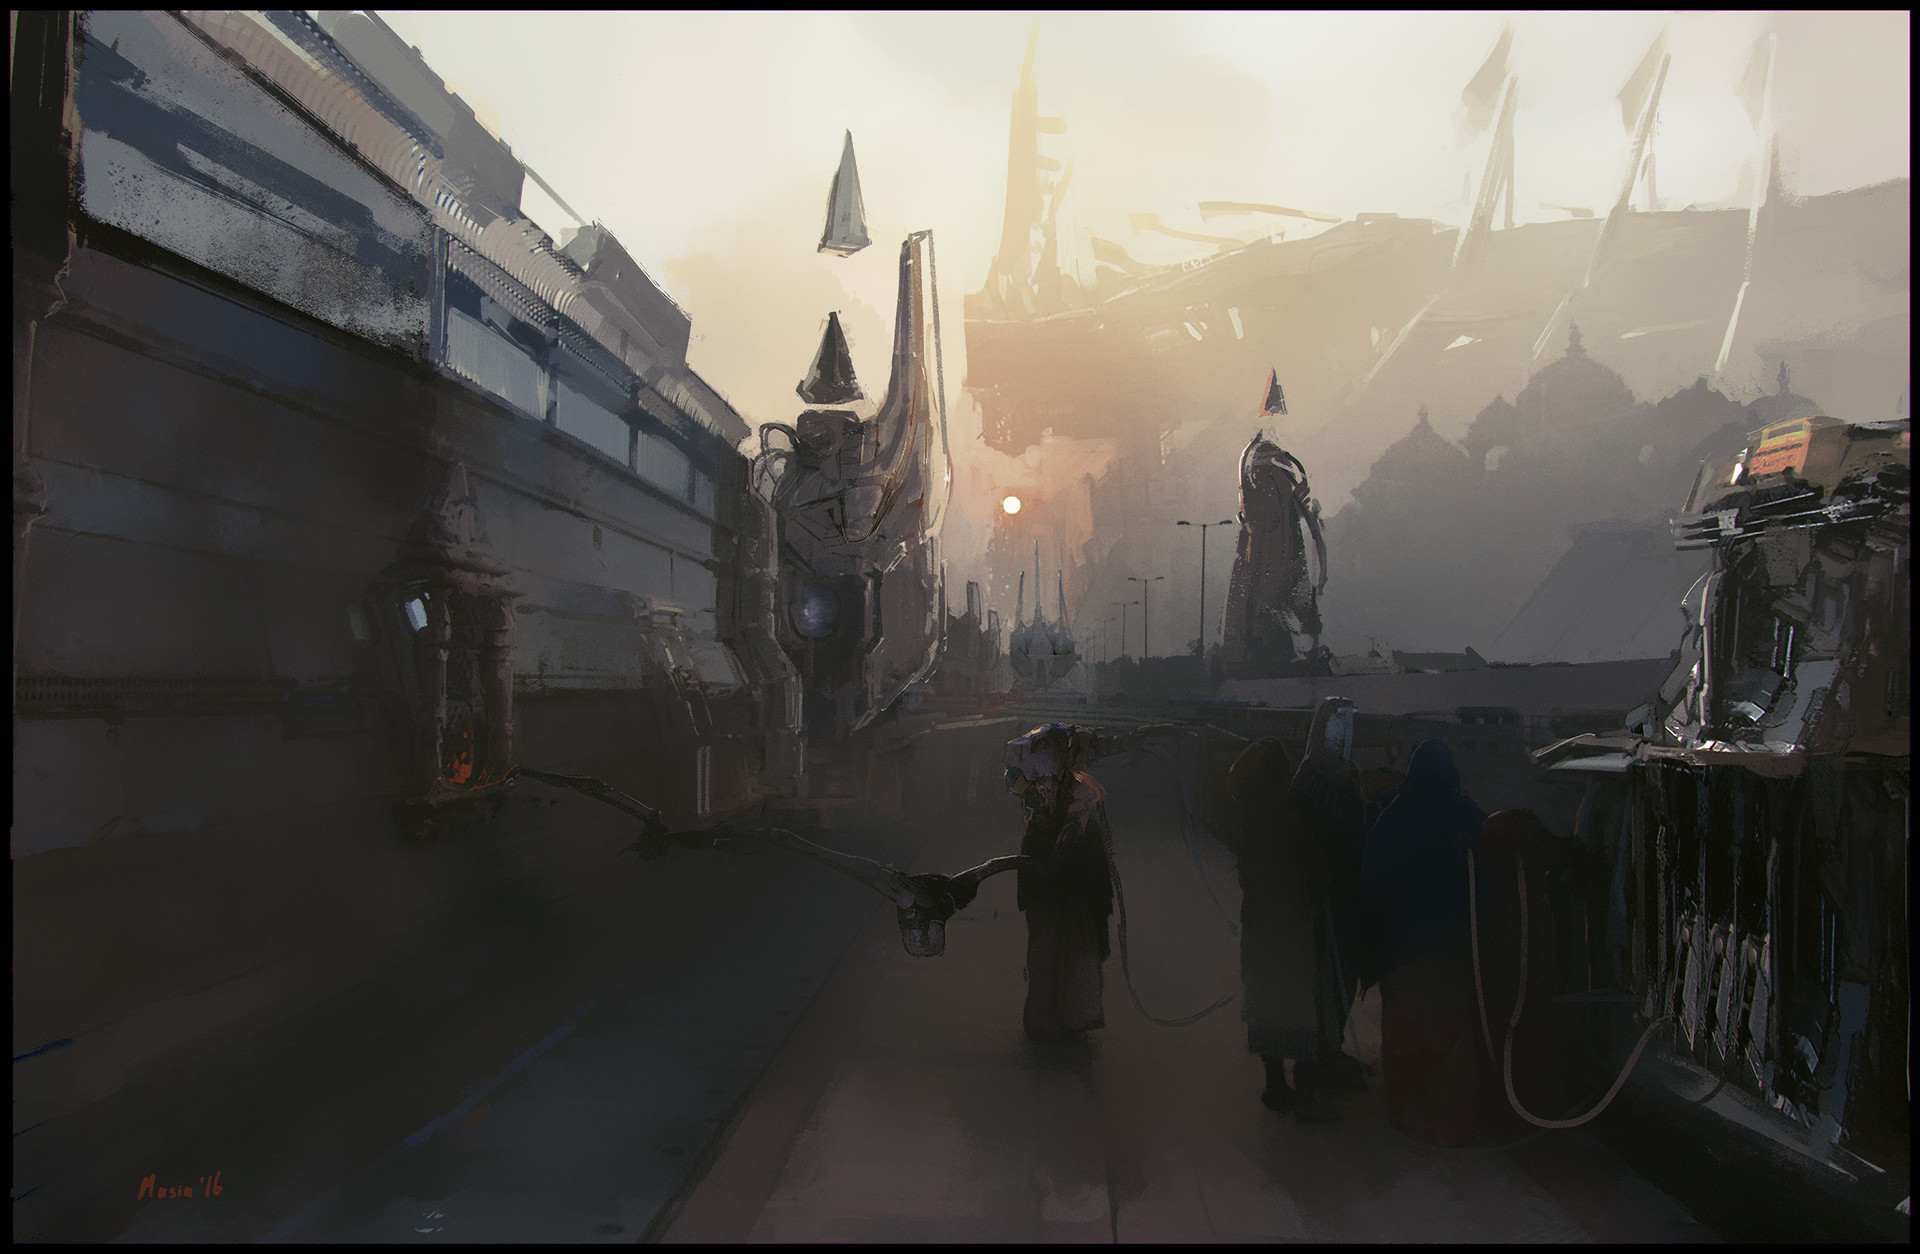 Sergey musin connected